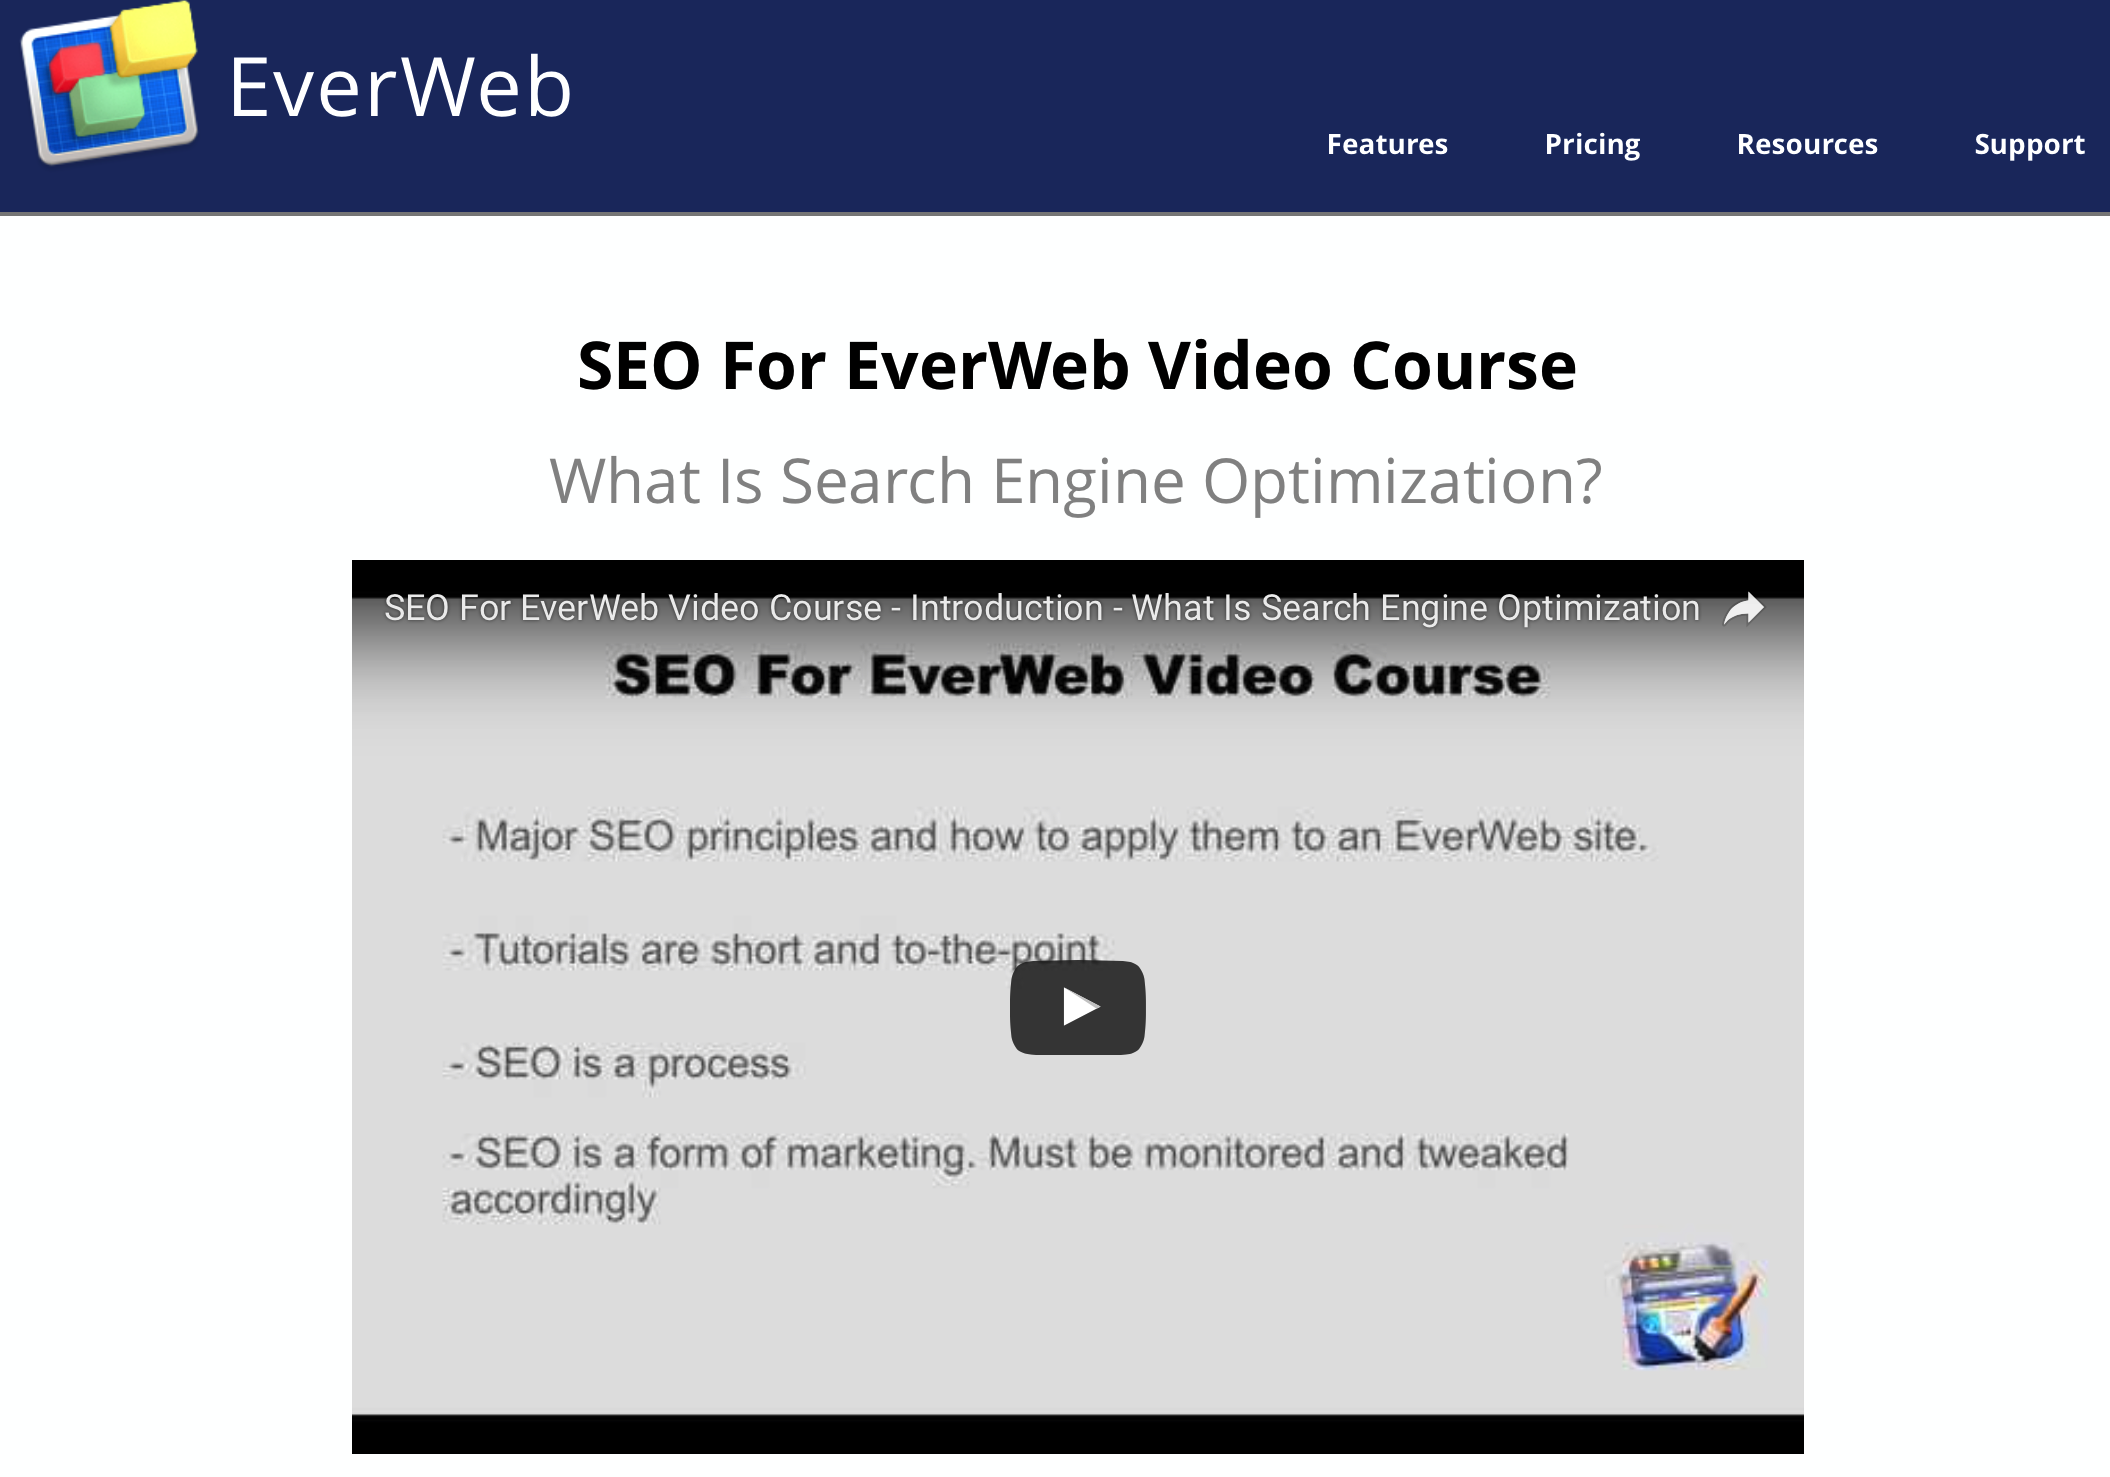 EverWeb SEO Course